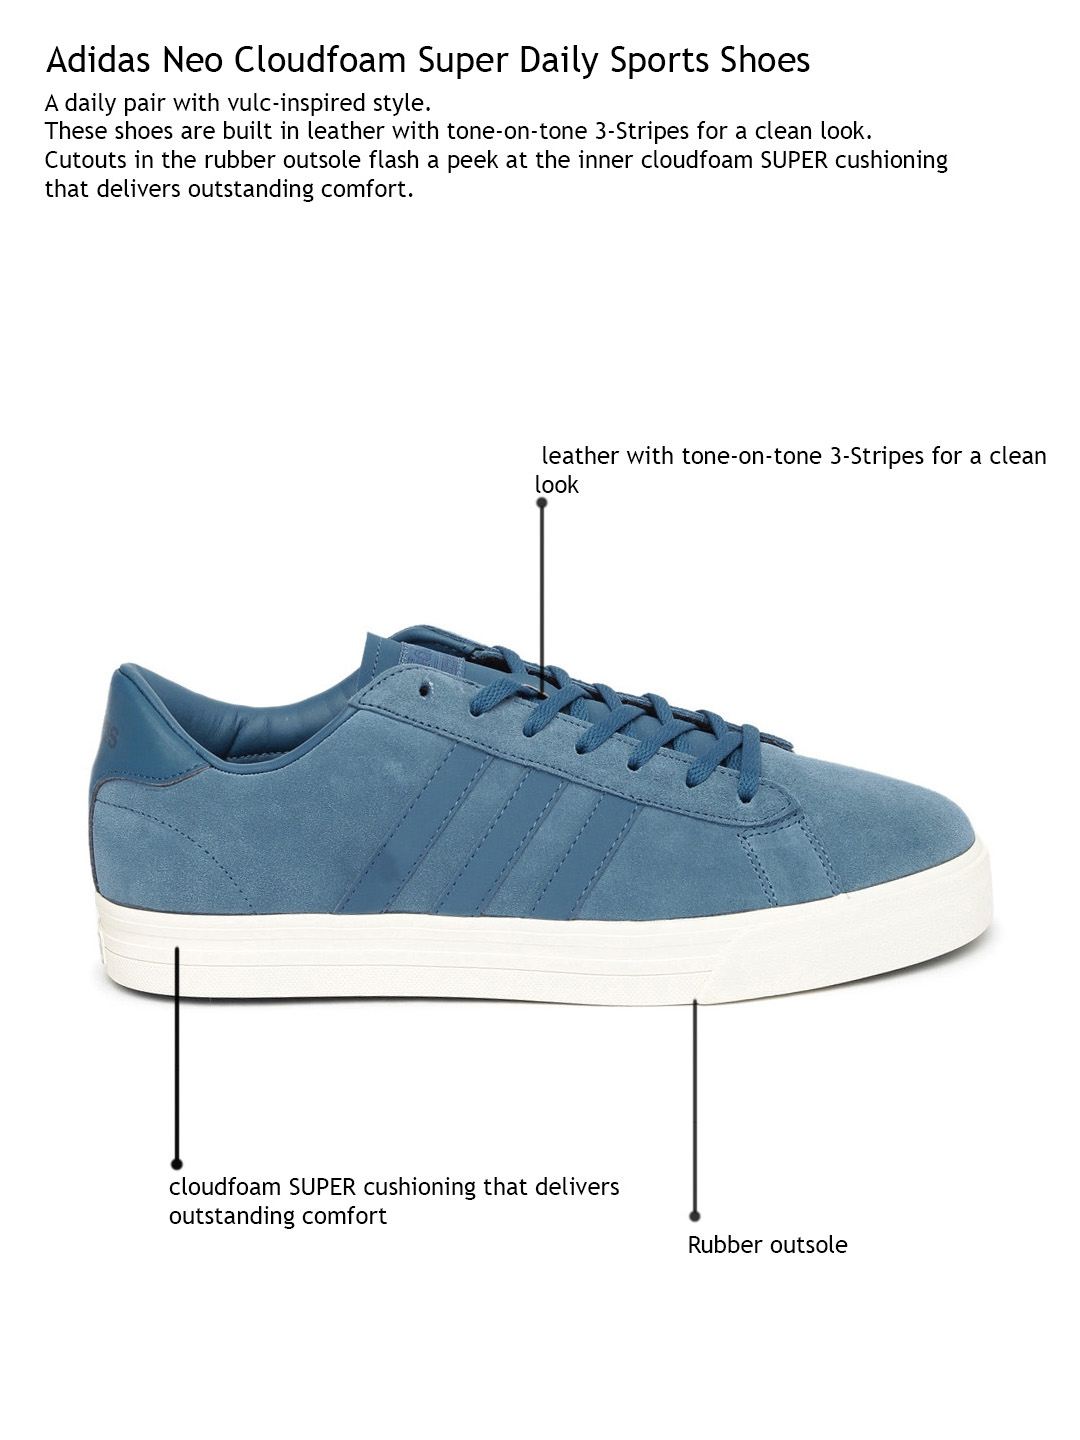 low price adidas neo cloudfoam super daily mens shoes size 9 blue navy  9acd0 453da  where can i buy image. more colours. adidas neo 761a3 147a6 dd4910db8